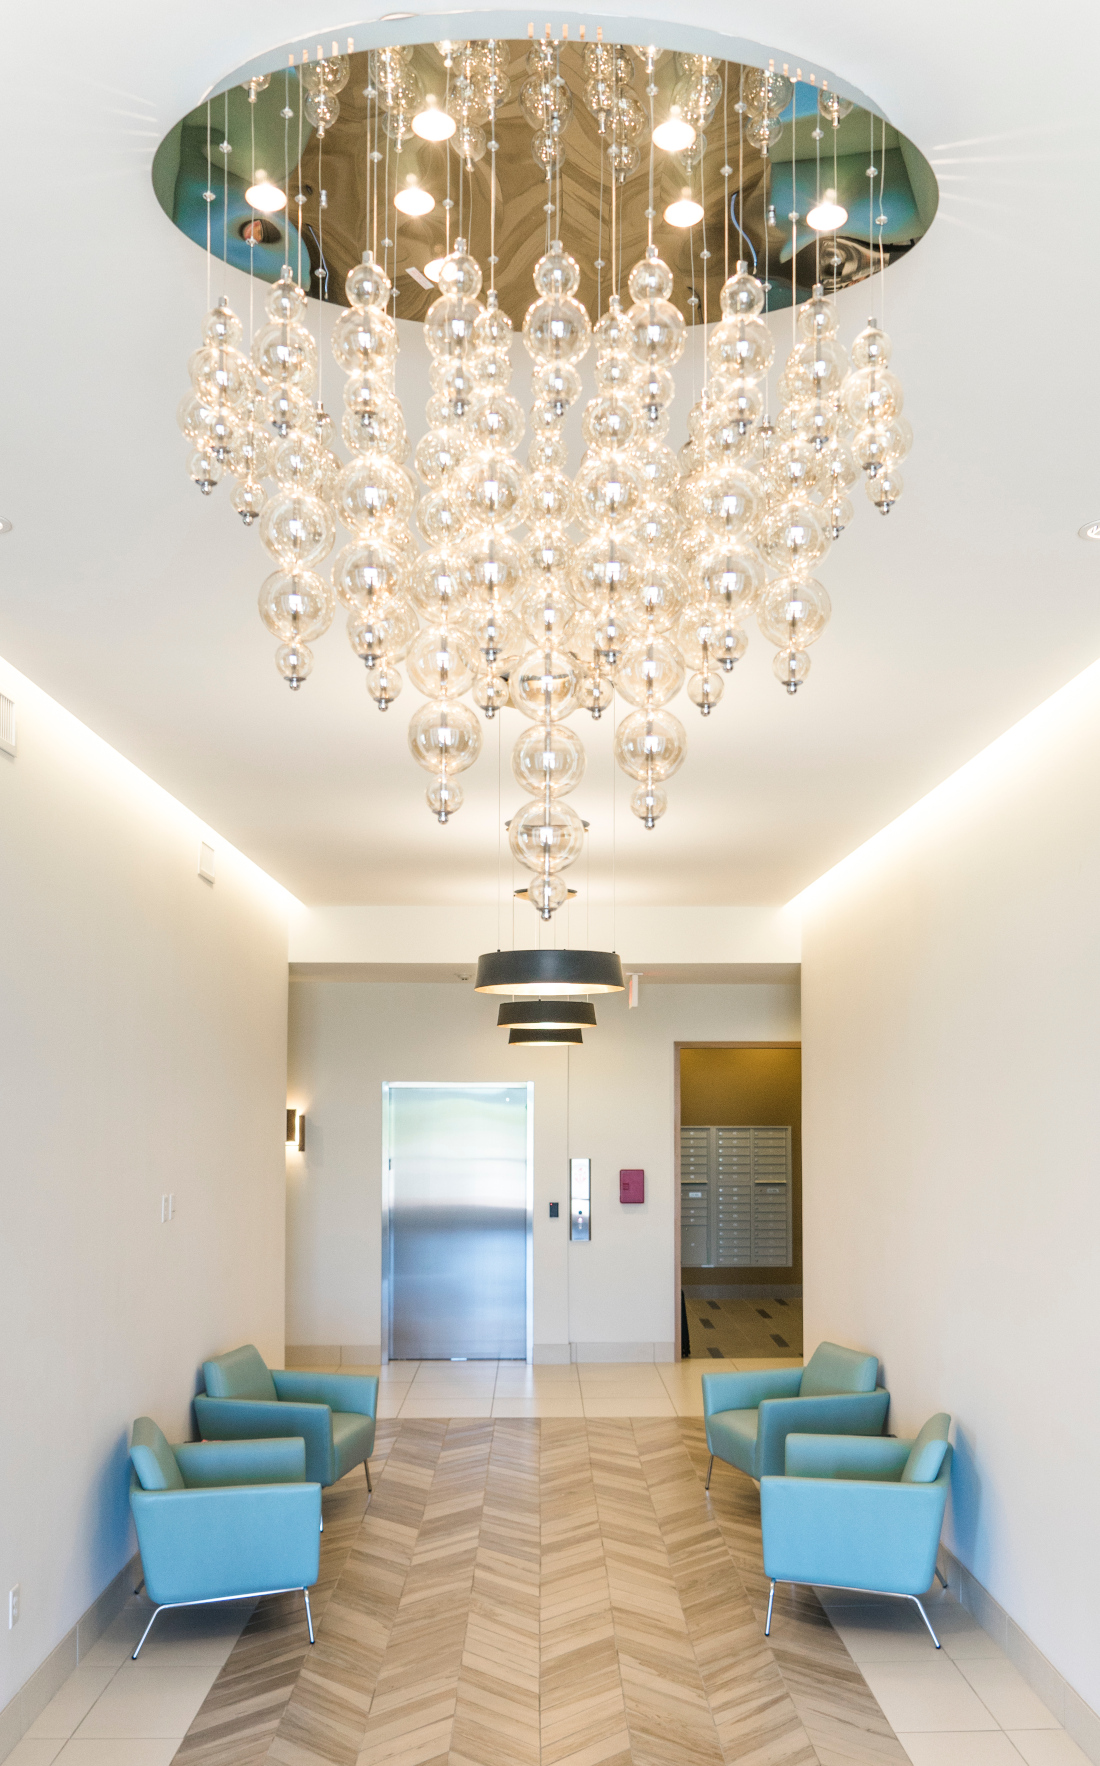 Gorgeous Chandelier at Domain City Center Luxury Apartments in Lenexa, Kansas